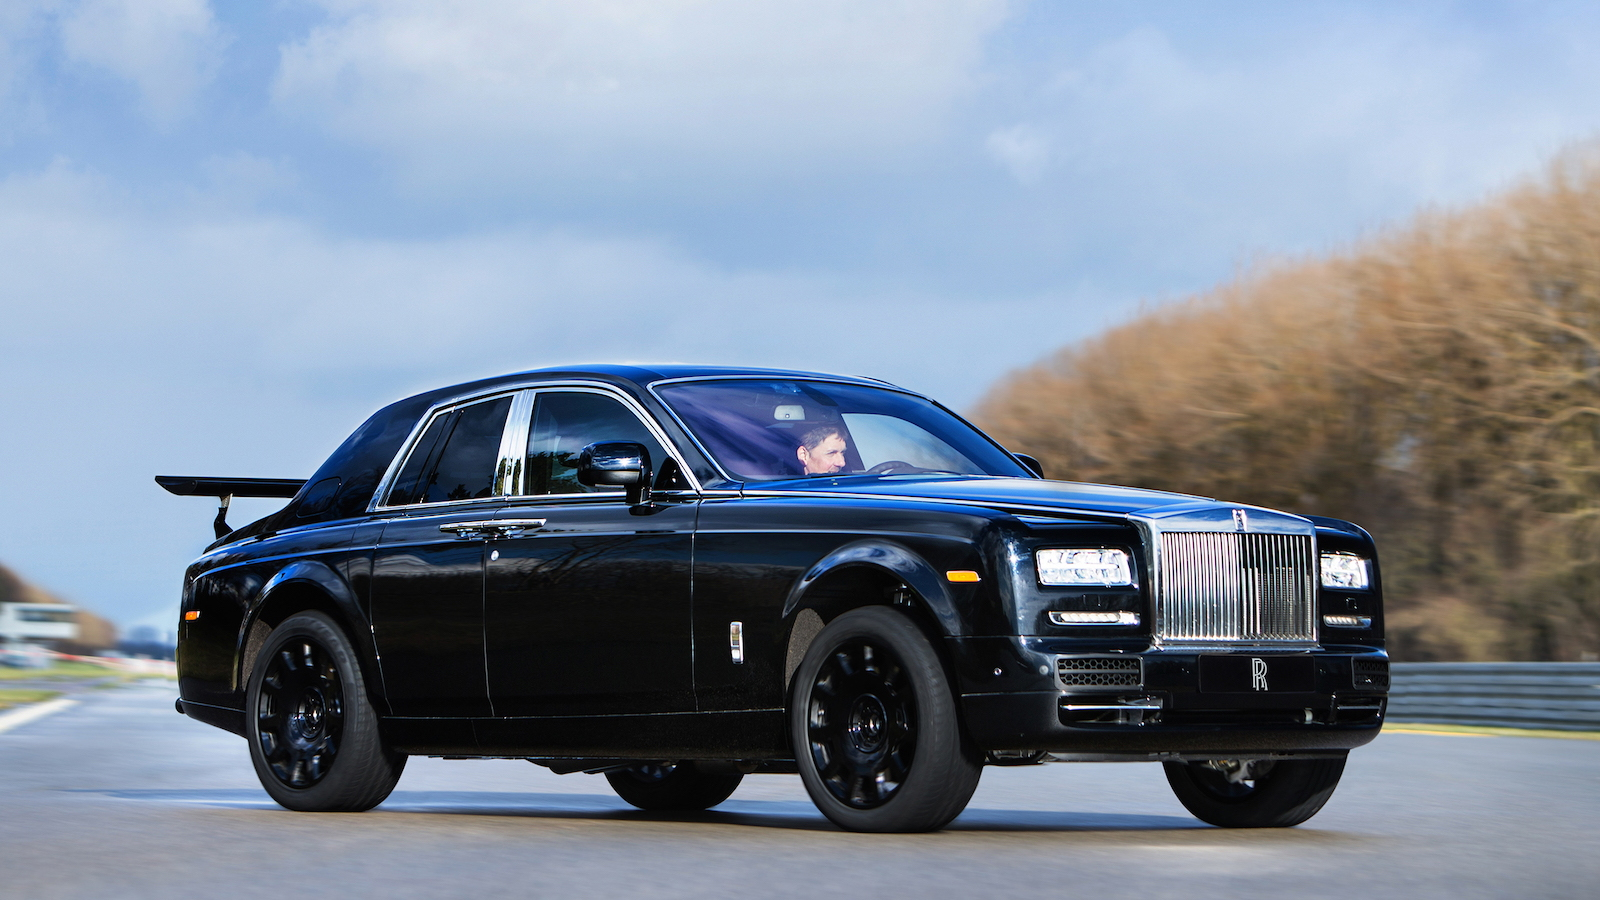 Rolls-Royce Project Cullinan engineering mule